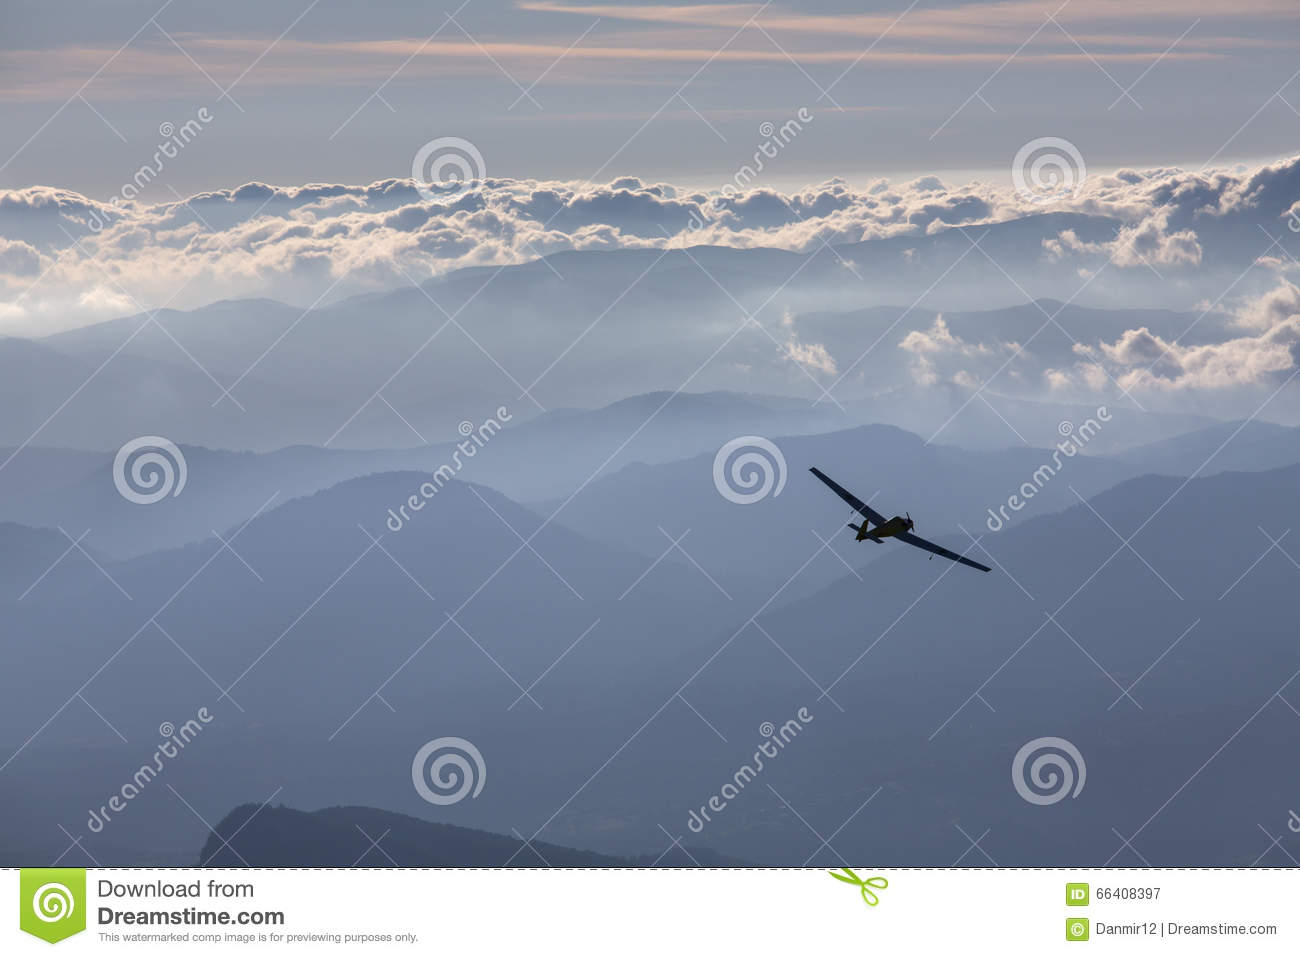 plane clouds and mountains - photo #3